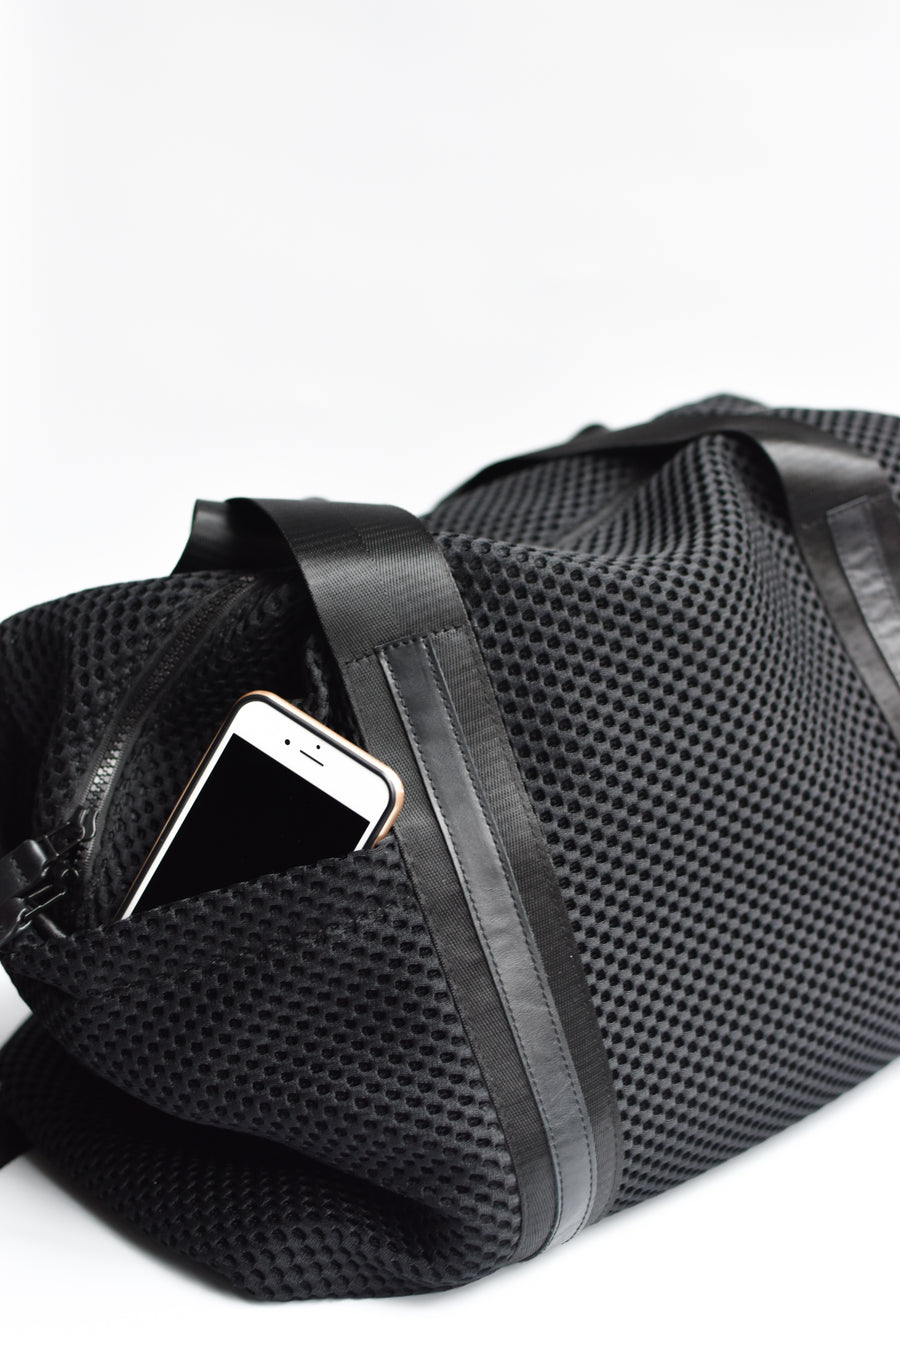 Close up of exterior side pocket on black mesh duffel bag with leather trim details.